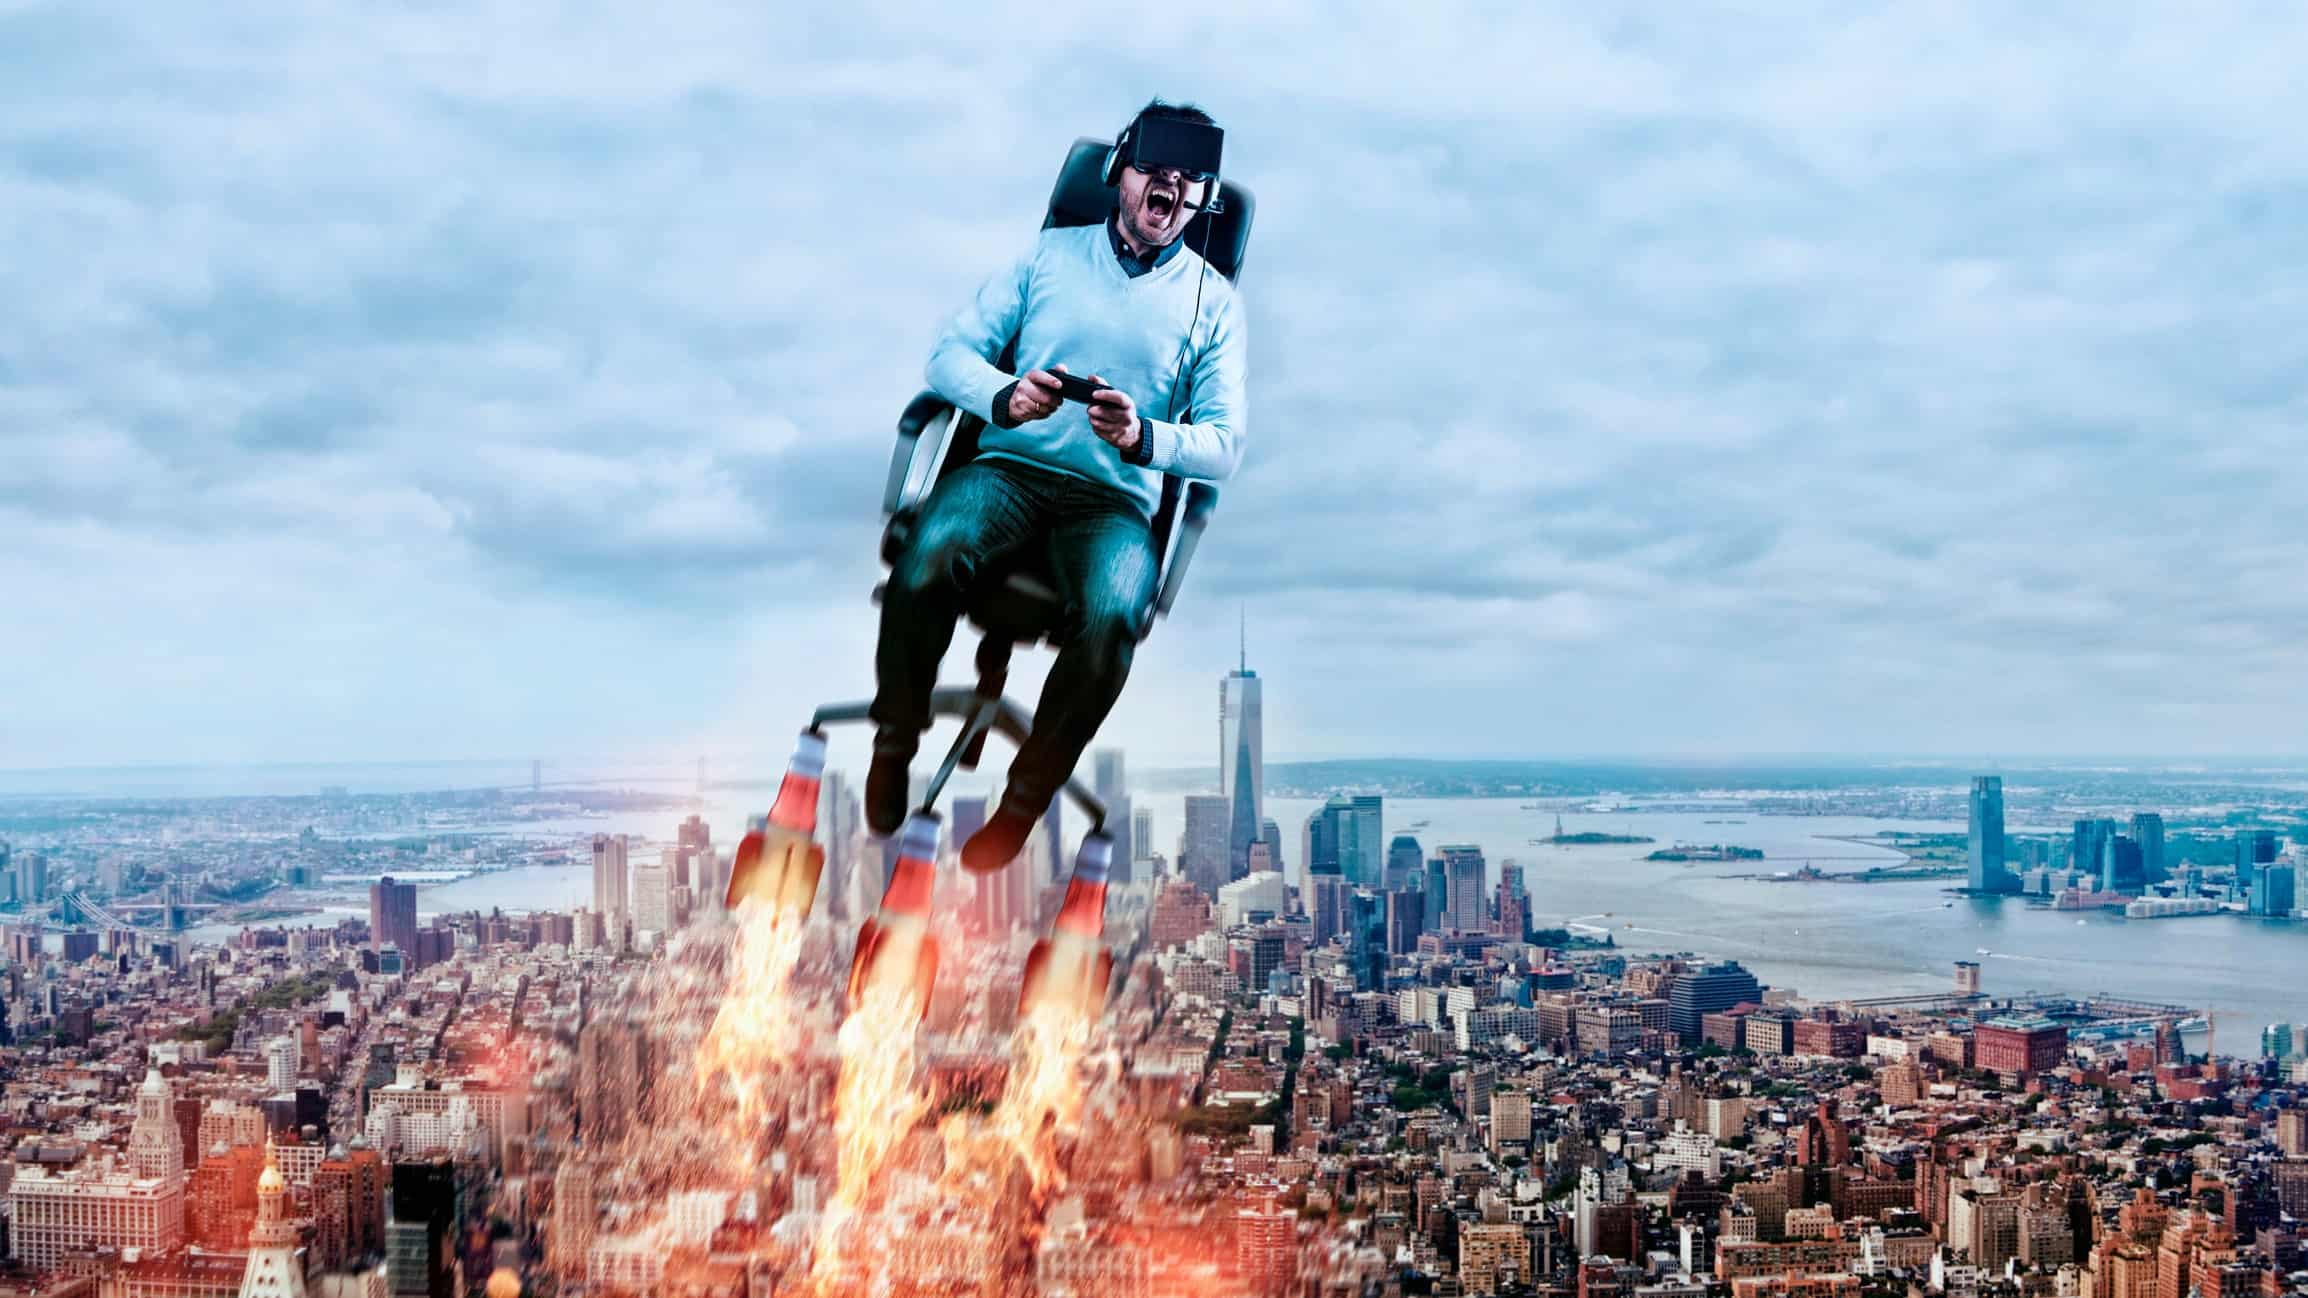 a man sits on a rocket propelled office chair and flies high above a city